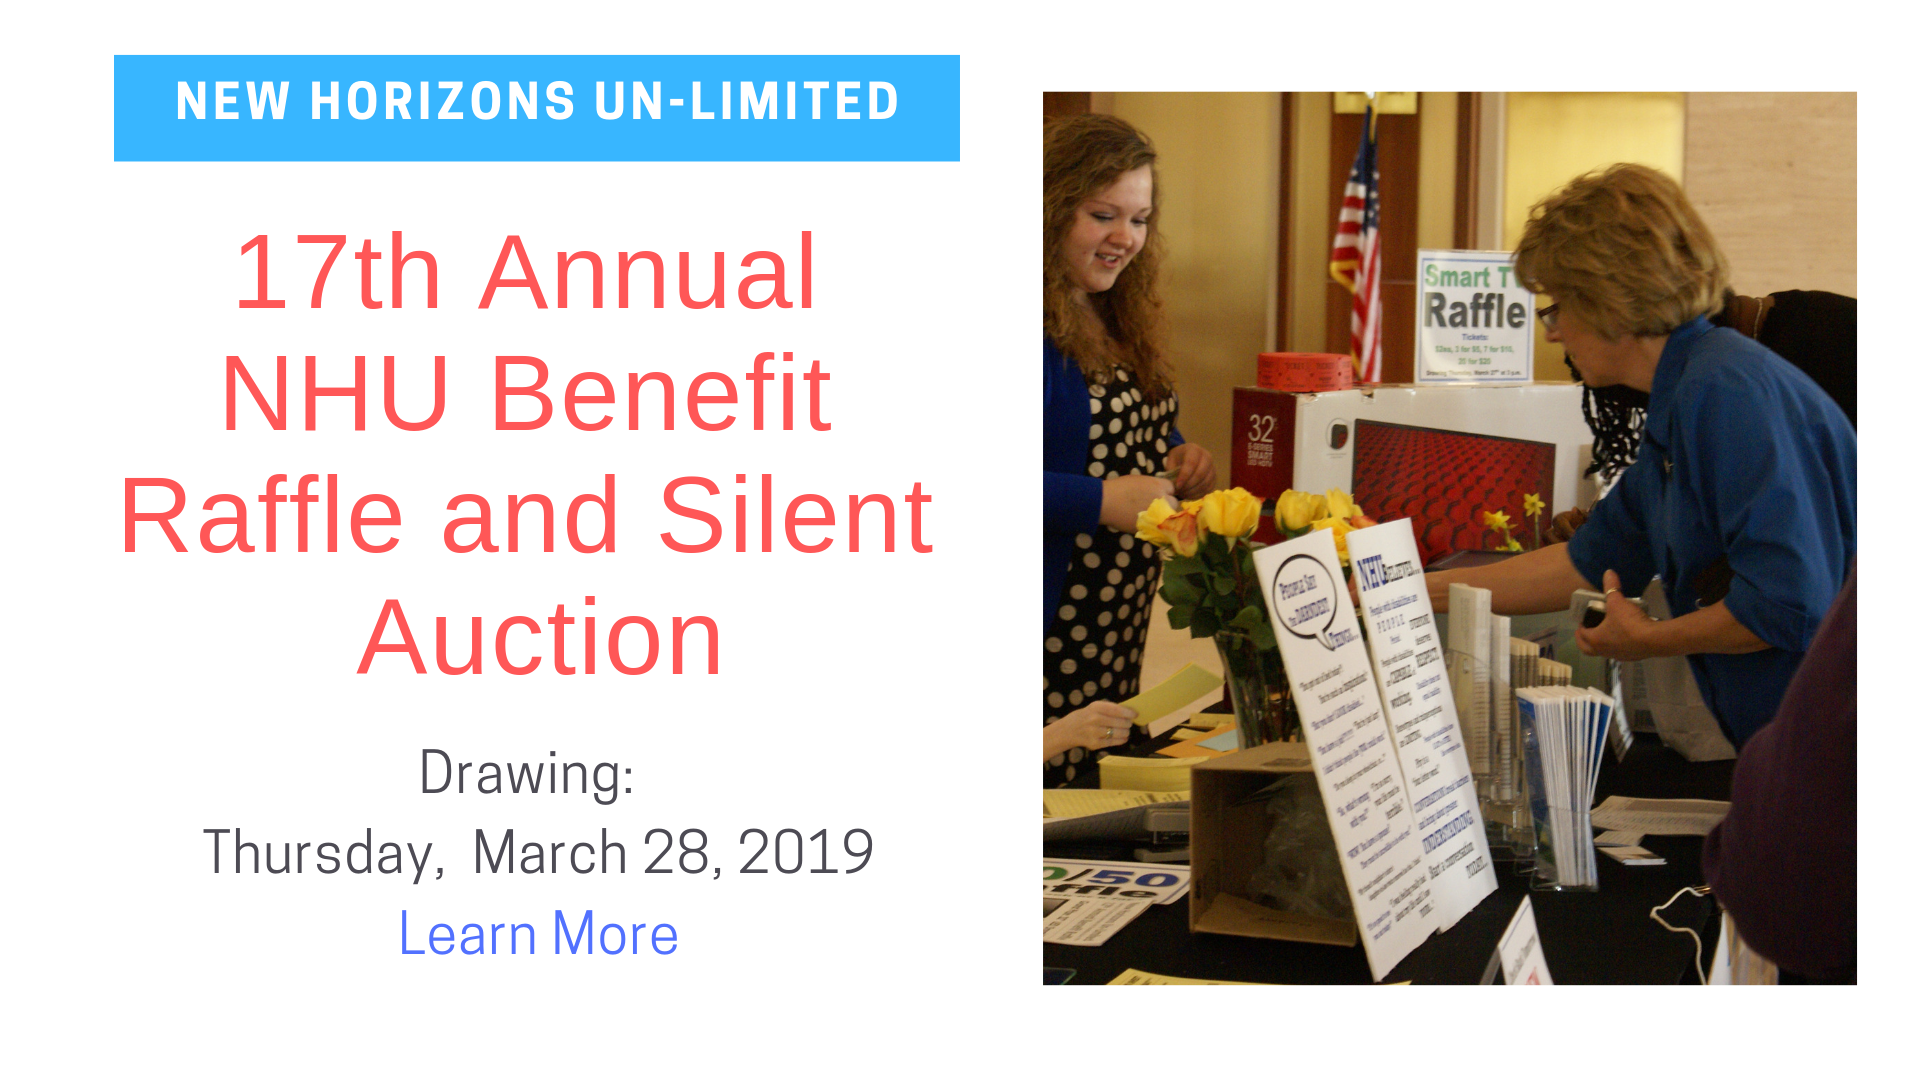 NHU Benefit Raffle and Silent Auction